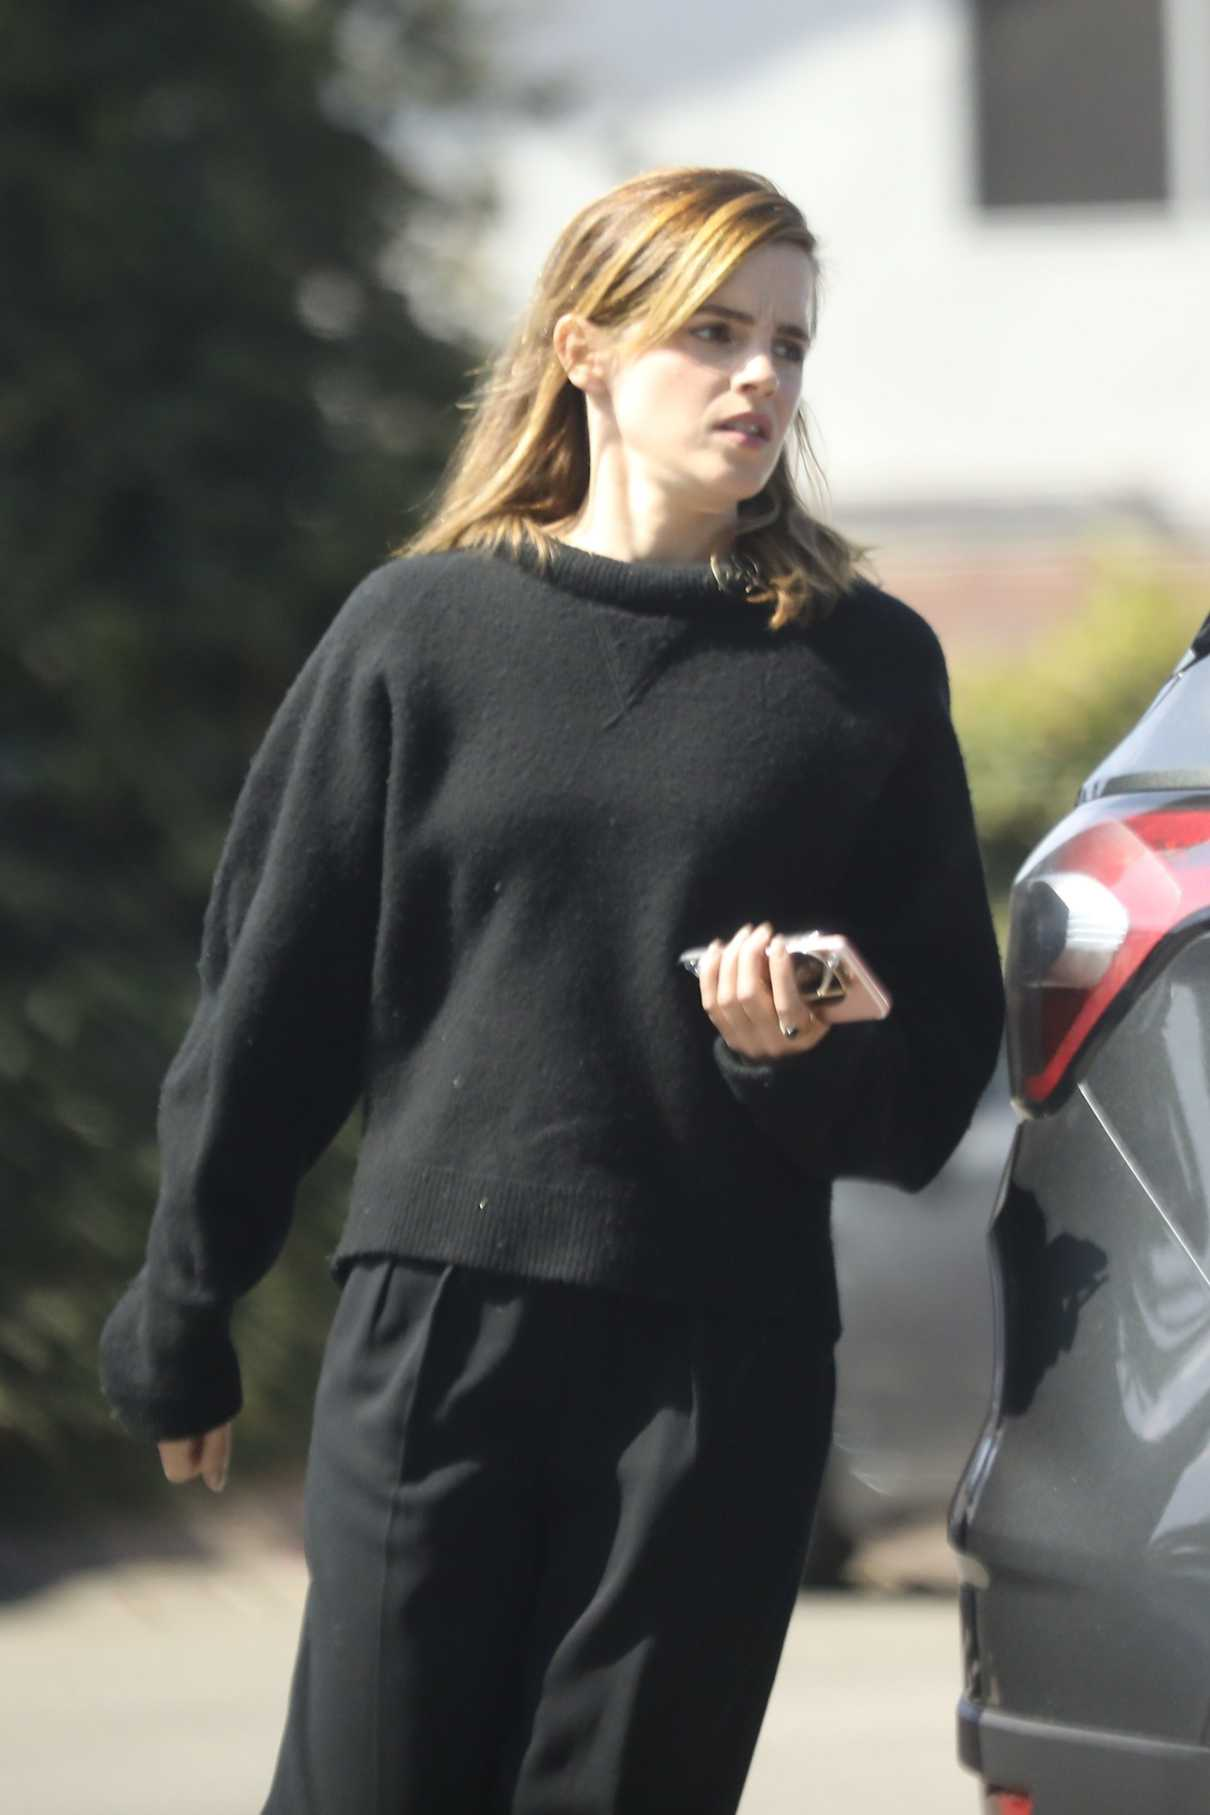 Emma Watson in a Black Sweater